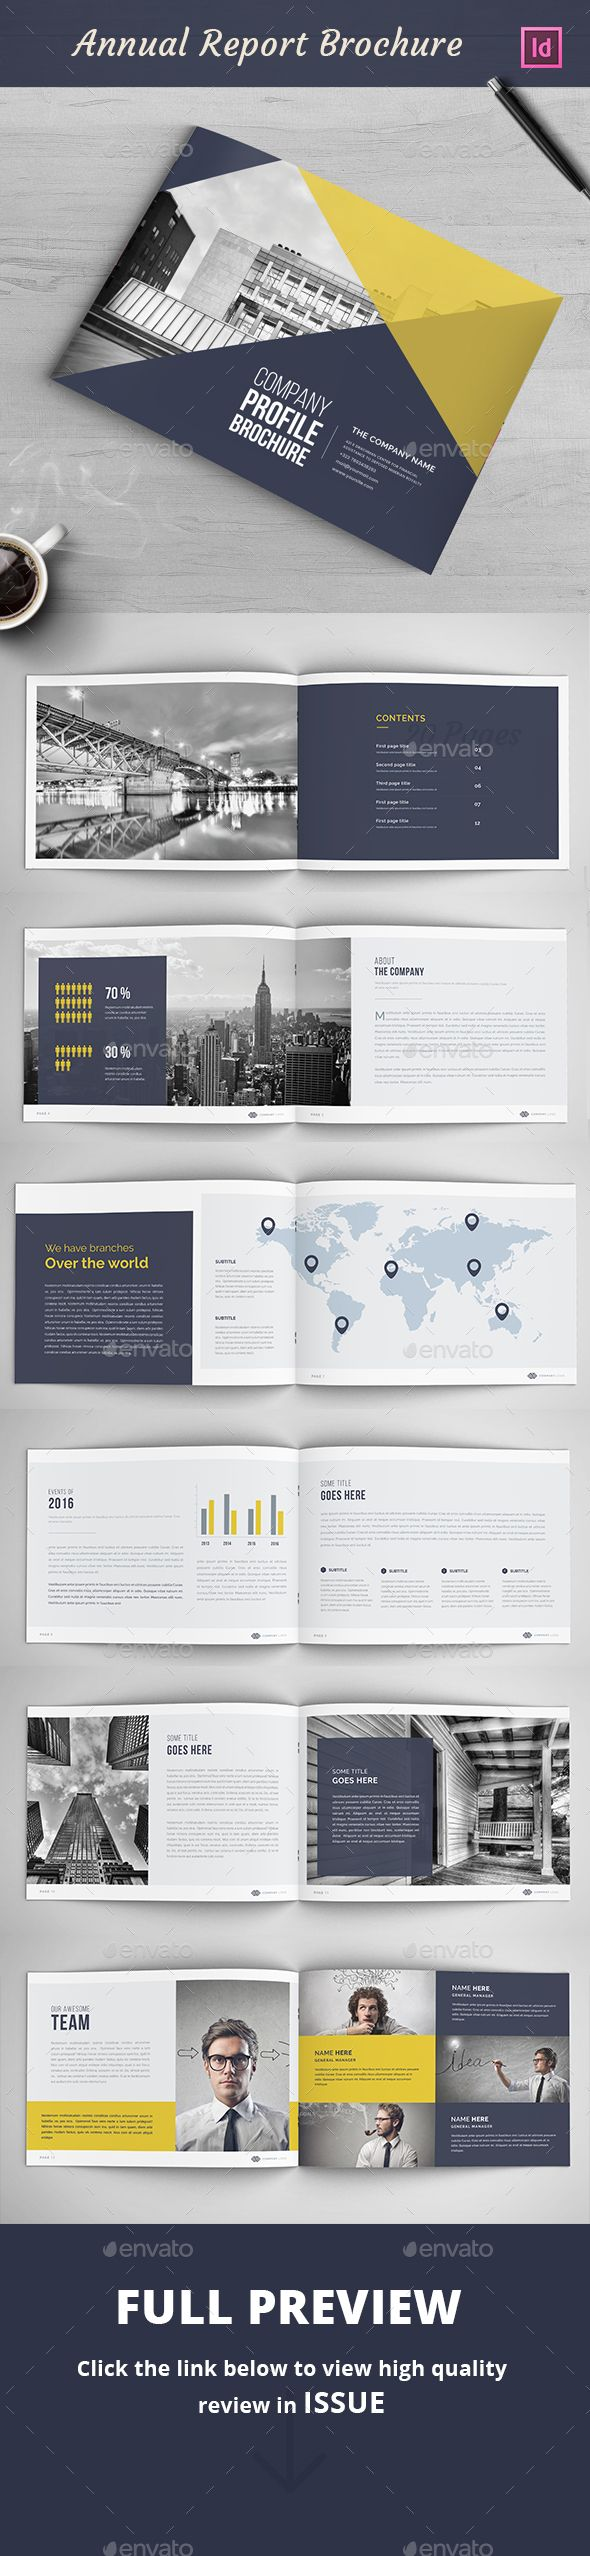 Annual Report Brochure Template InDesign INDD. Download here: http://graphicriver.net/item/annual-report-brochure/16669837?ref=ksioks